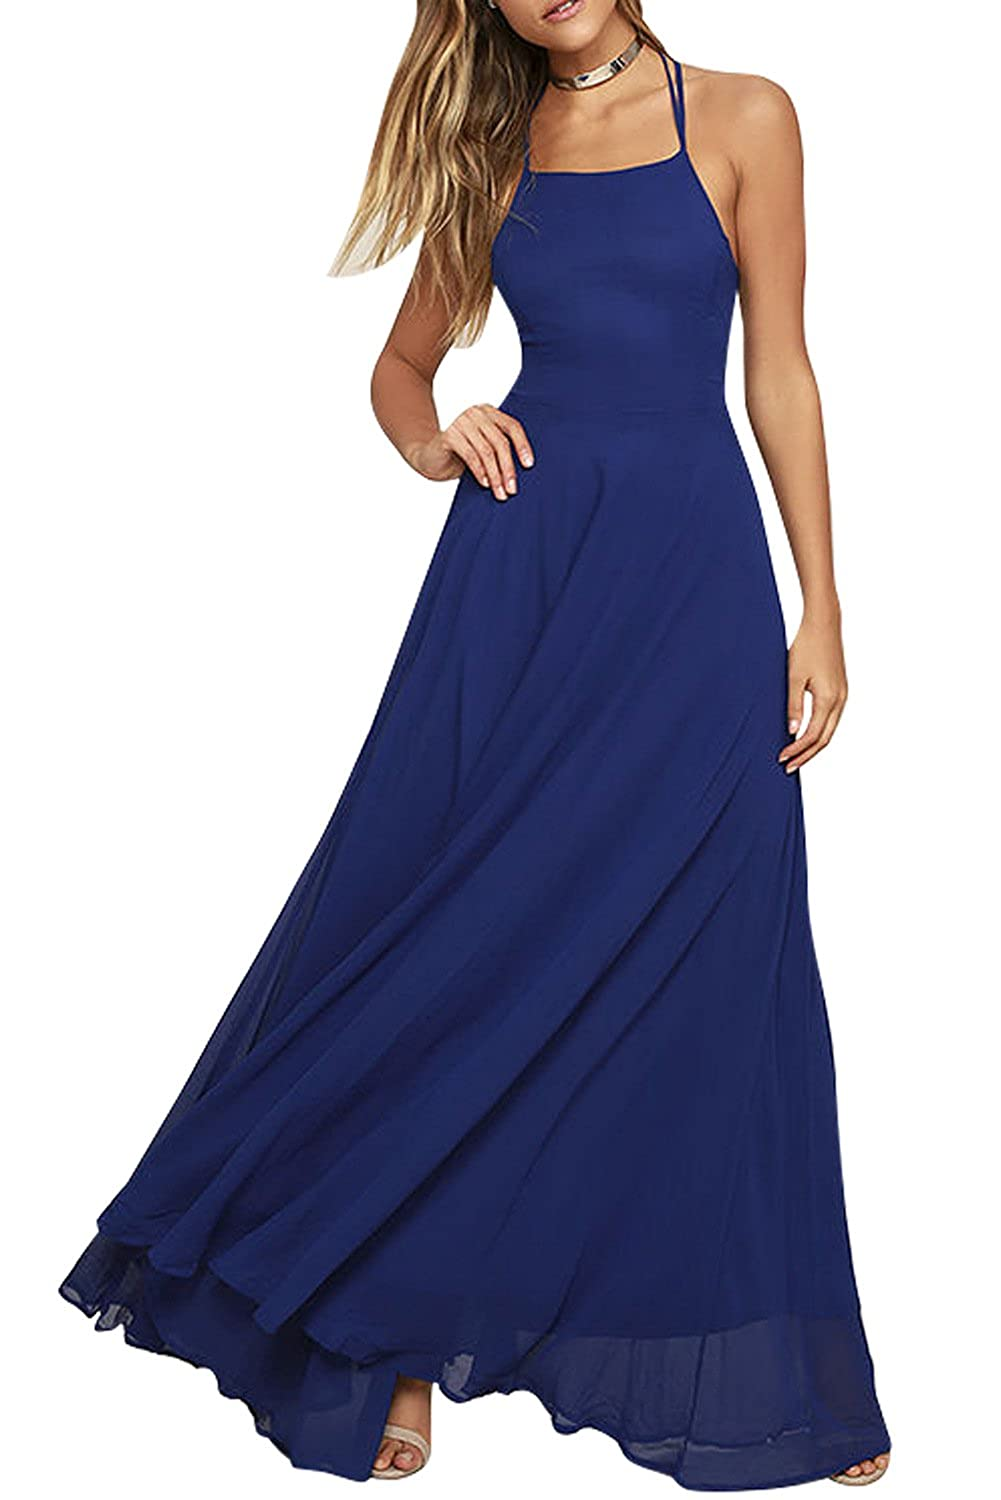 MARSEN Homecoming Dresses, Cocktail Party Dresses, Black Chiffon Dresses 2018 at Amazon Womens Clothing store: